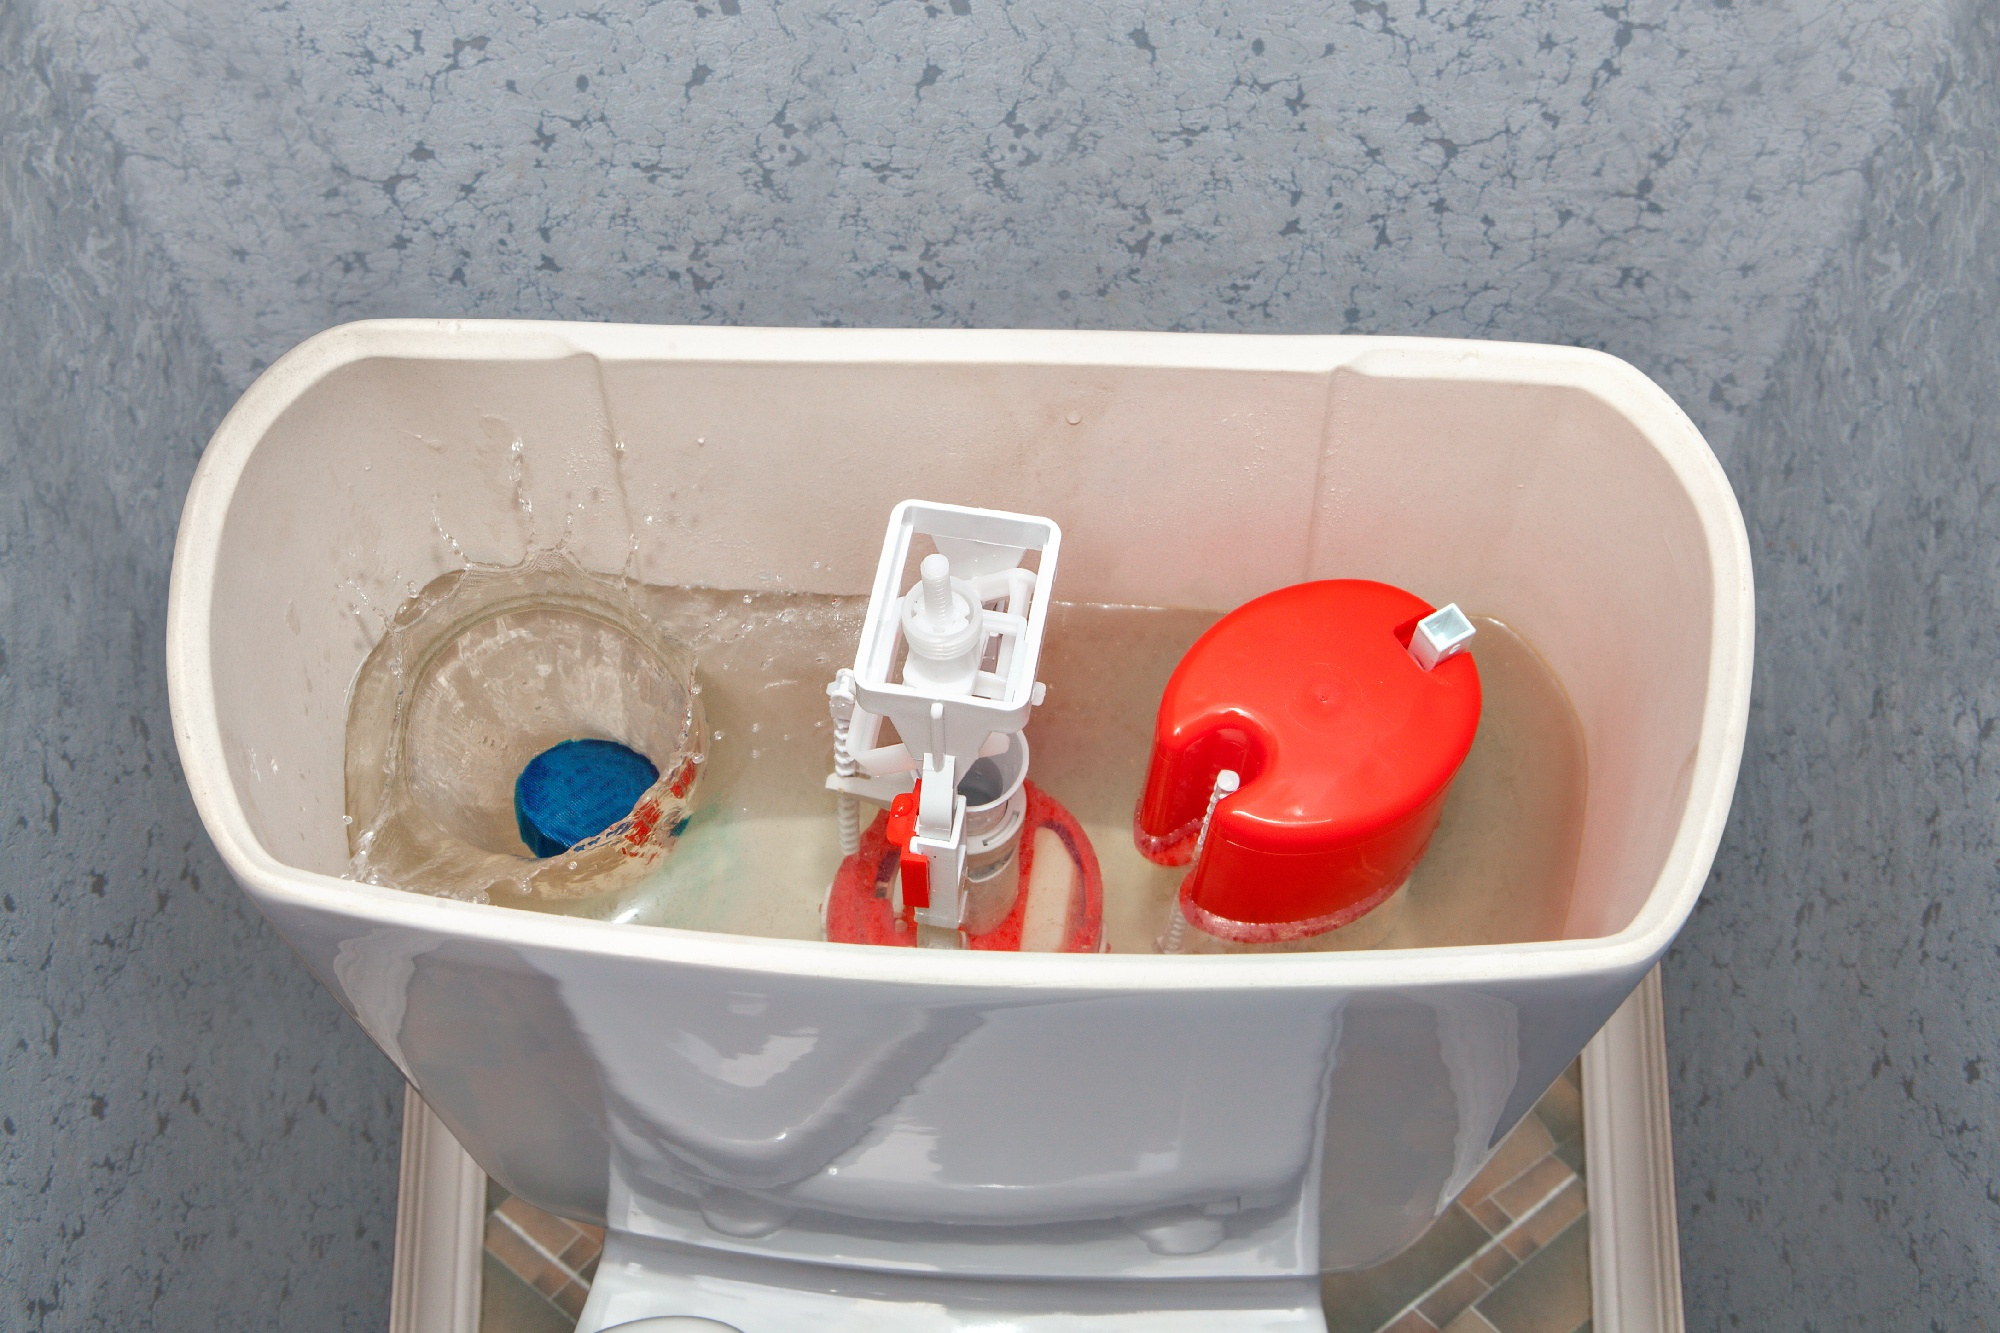 toilet constantly running